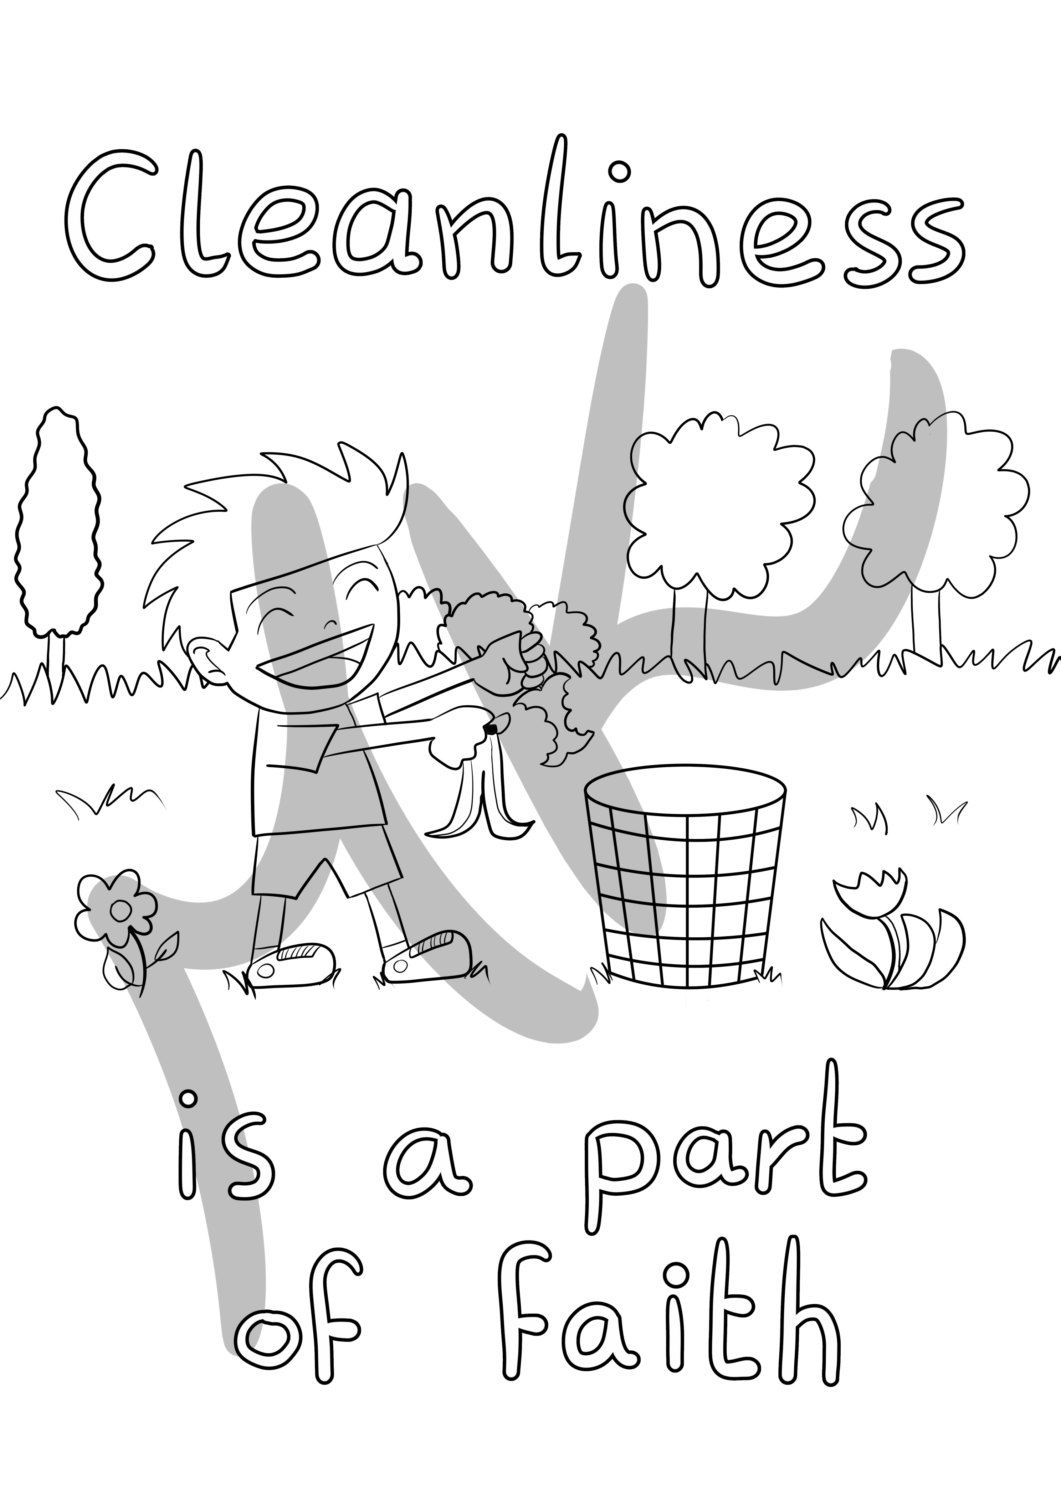 Health,Hygiene and Cleanliness Essay